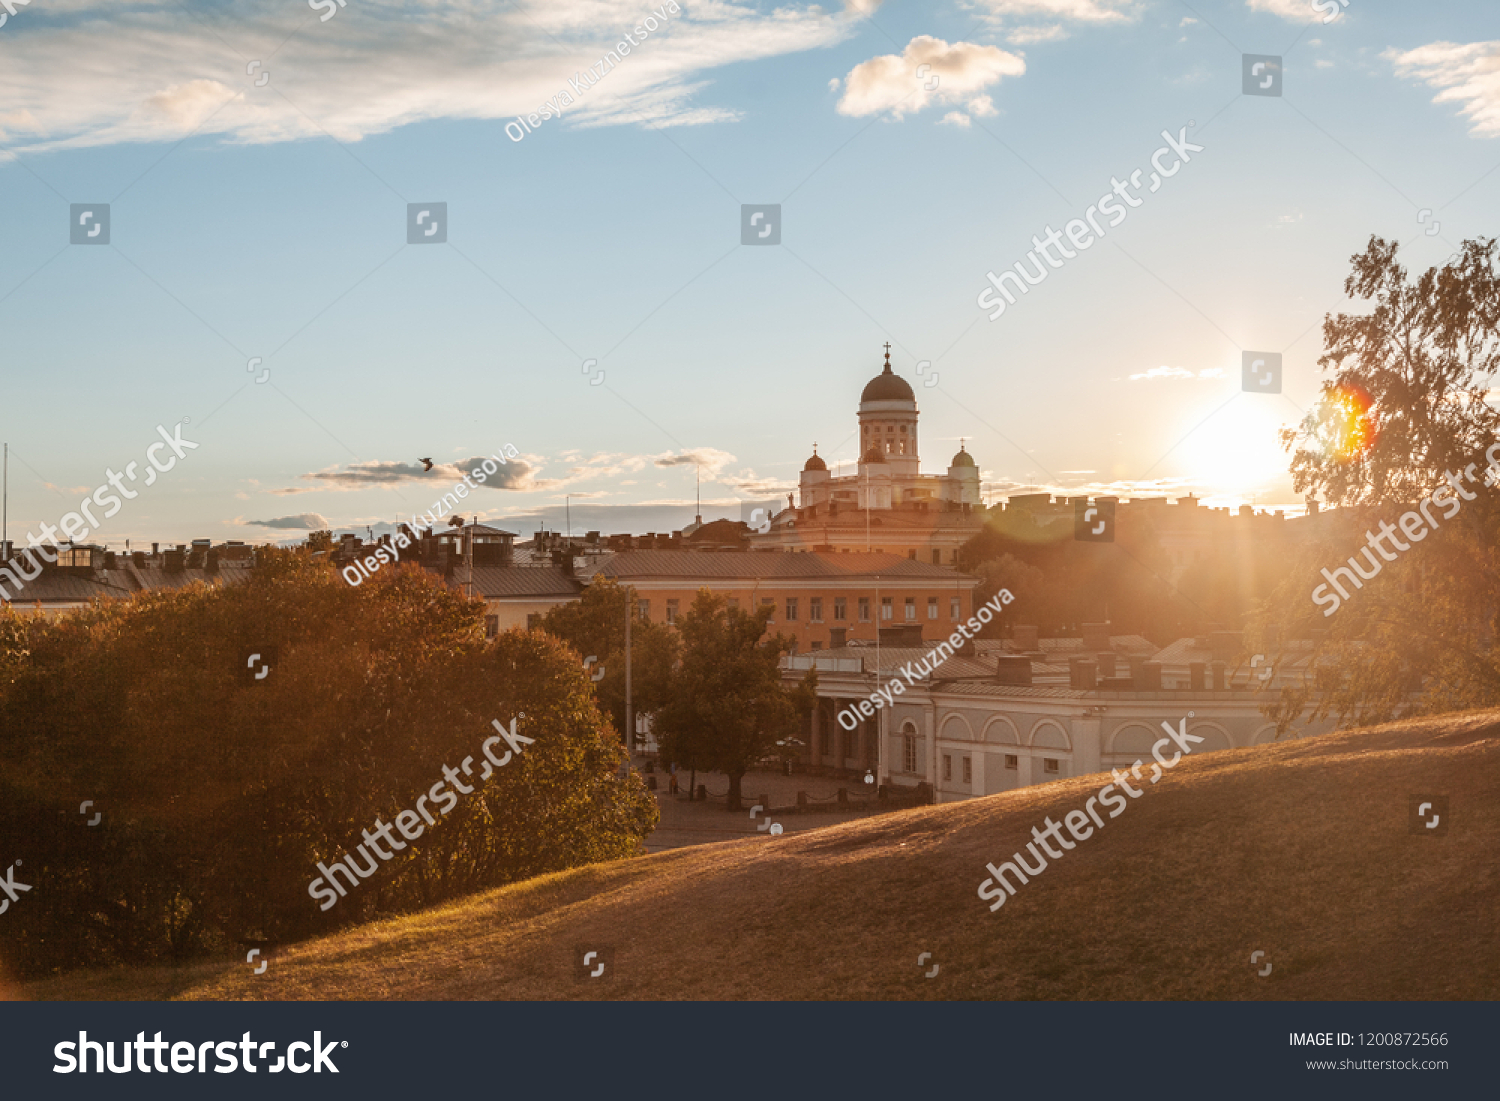 1e3f1ca84fd View Central Cathedral Helsinki Finland Sunset Stock Photo (Edit Now ...